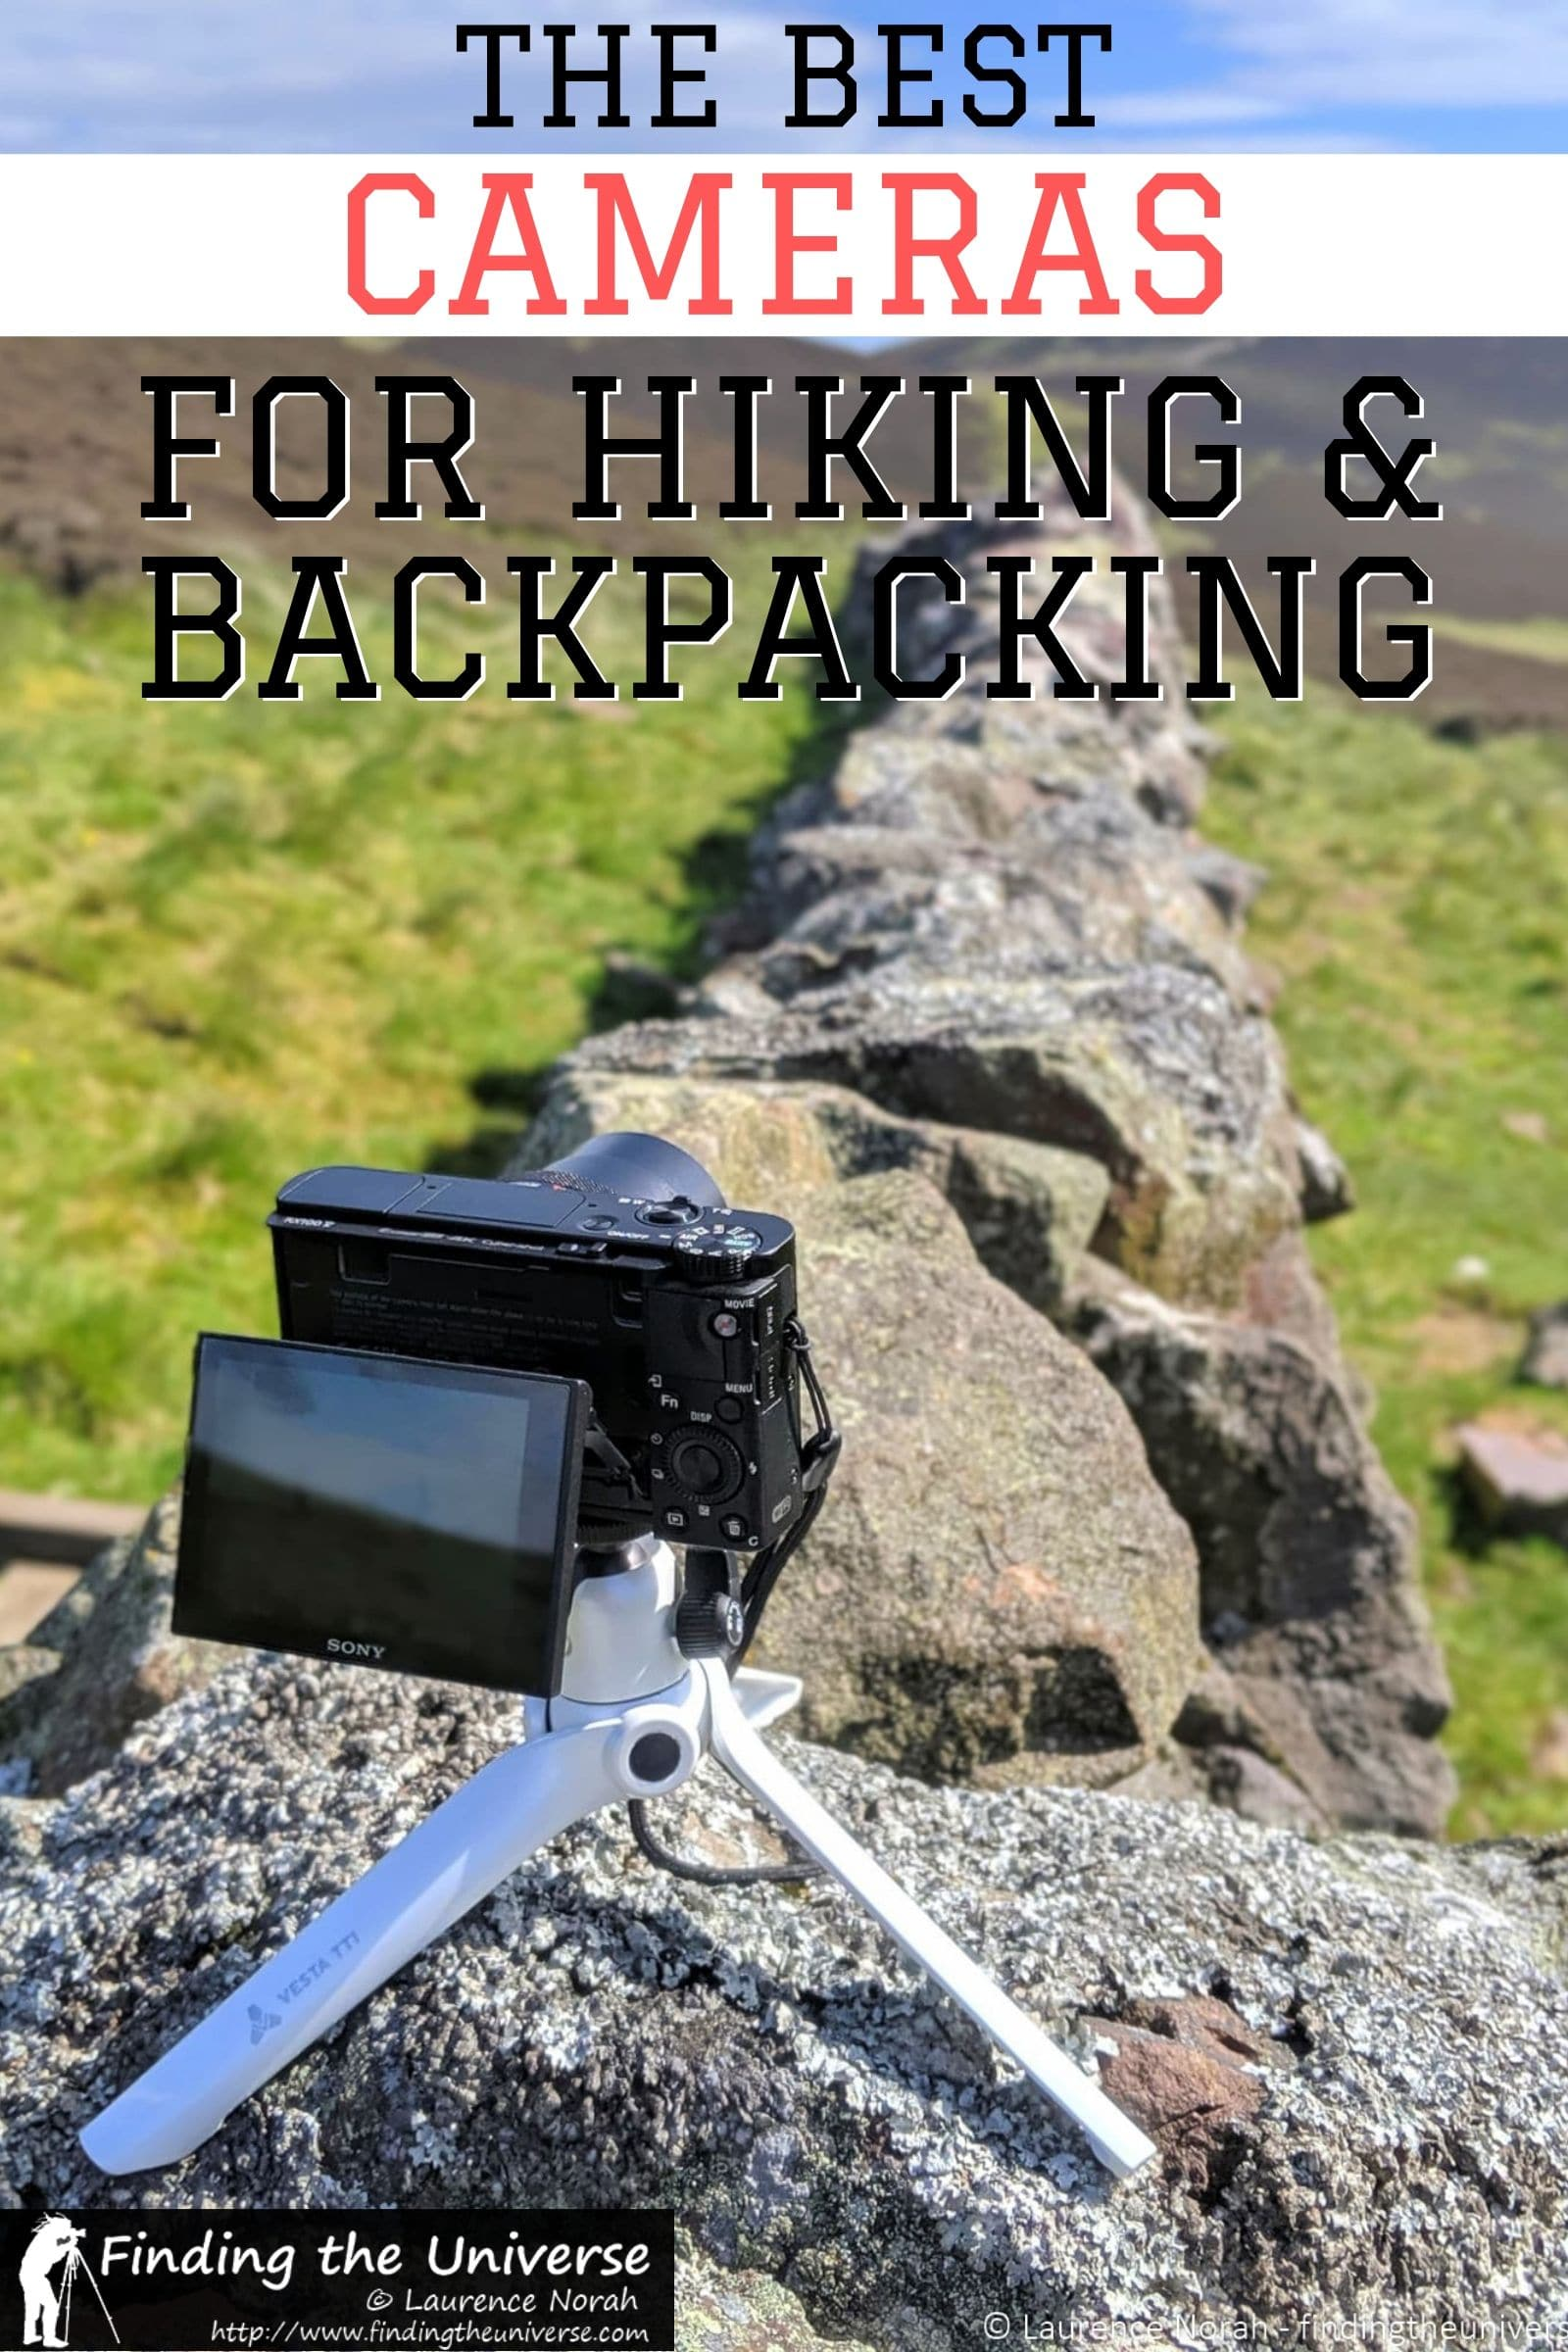 A guide to the best camera for hiking and/or backpacking. Has camera suggestions across a range of budget, plus detailed tips on what to look for